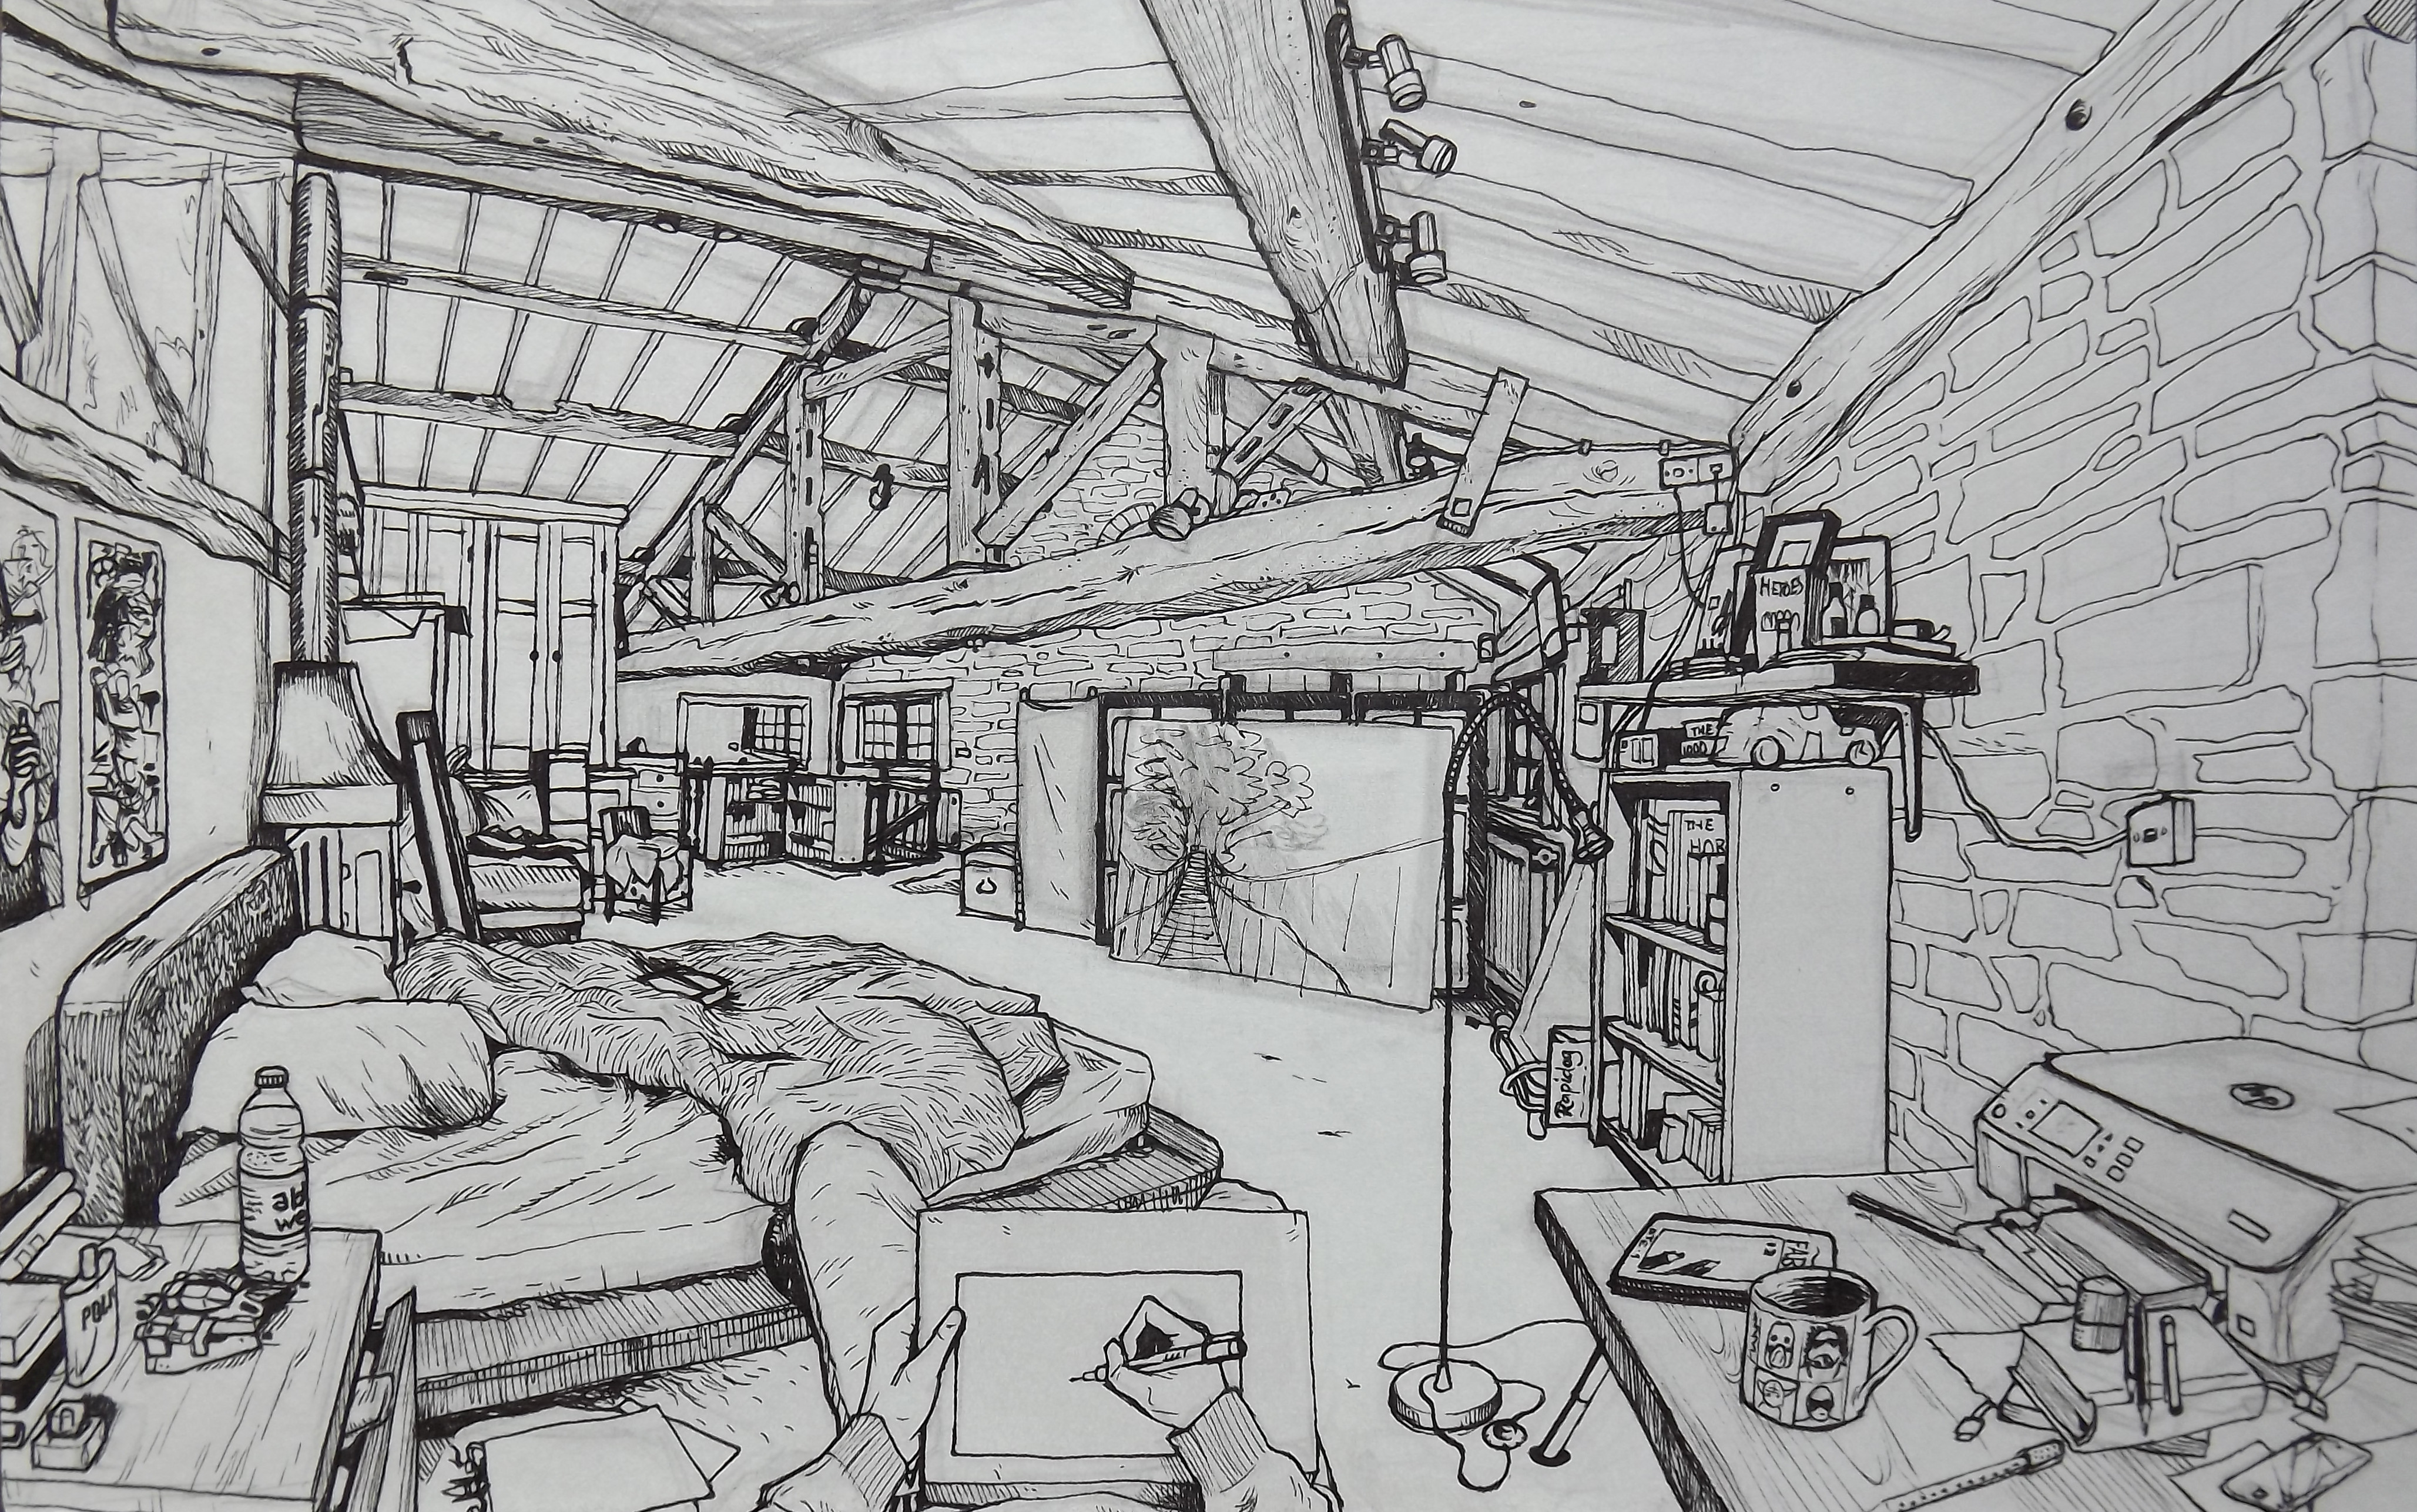 Drawn living room My drawing drawing and Bedroom